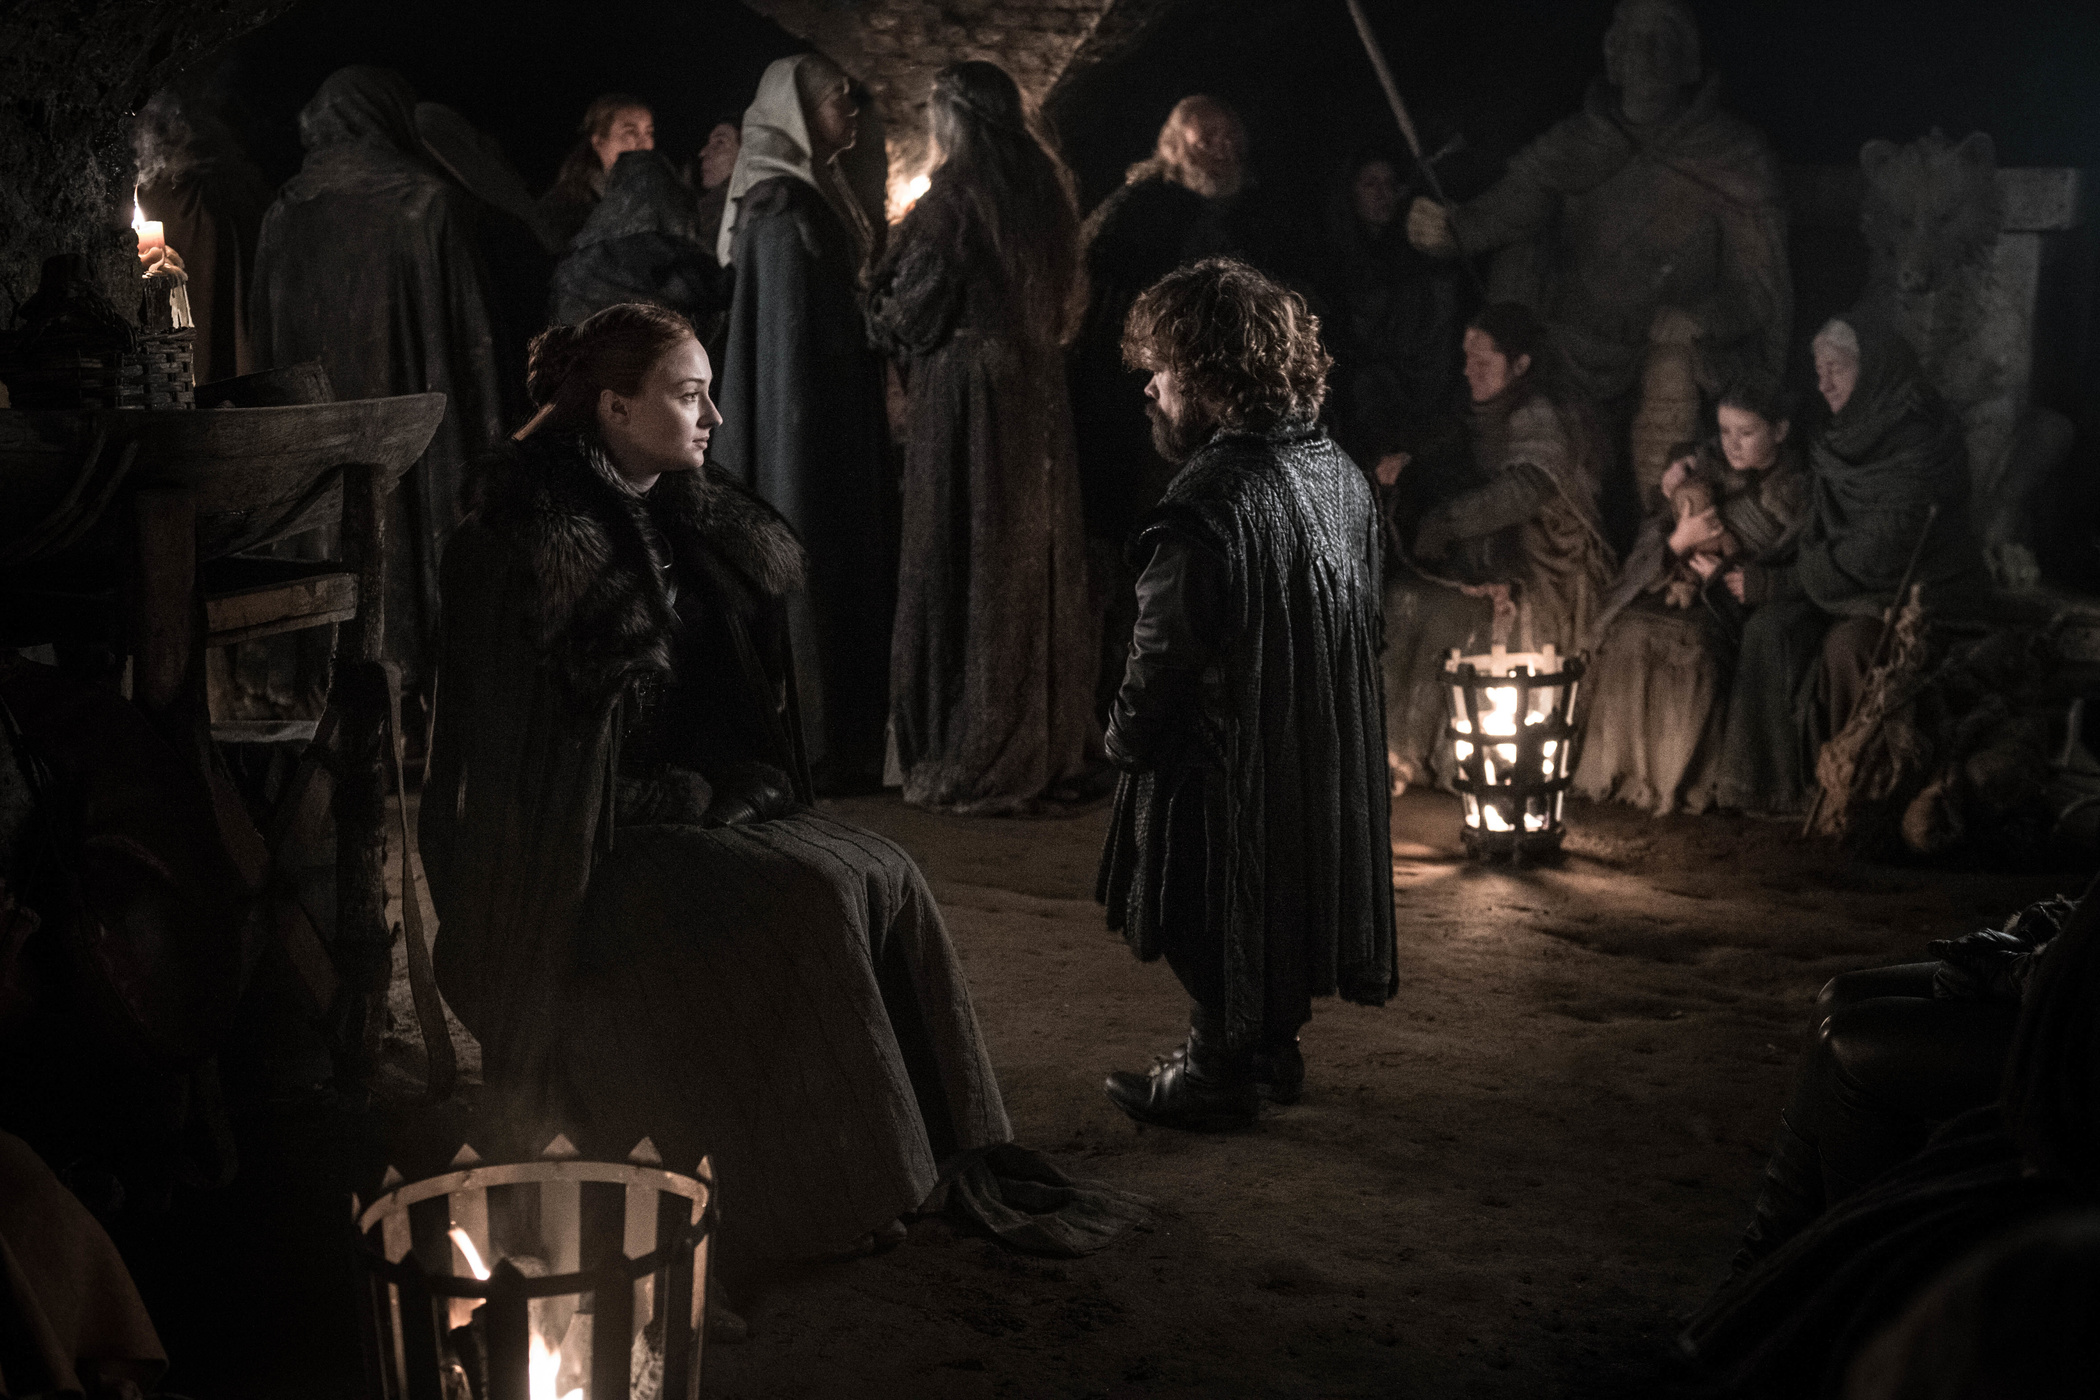 Sansa Stark bonds with Tyrion during the Battle of Winterfell in Game of Thrones season 8 episode 3